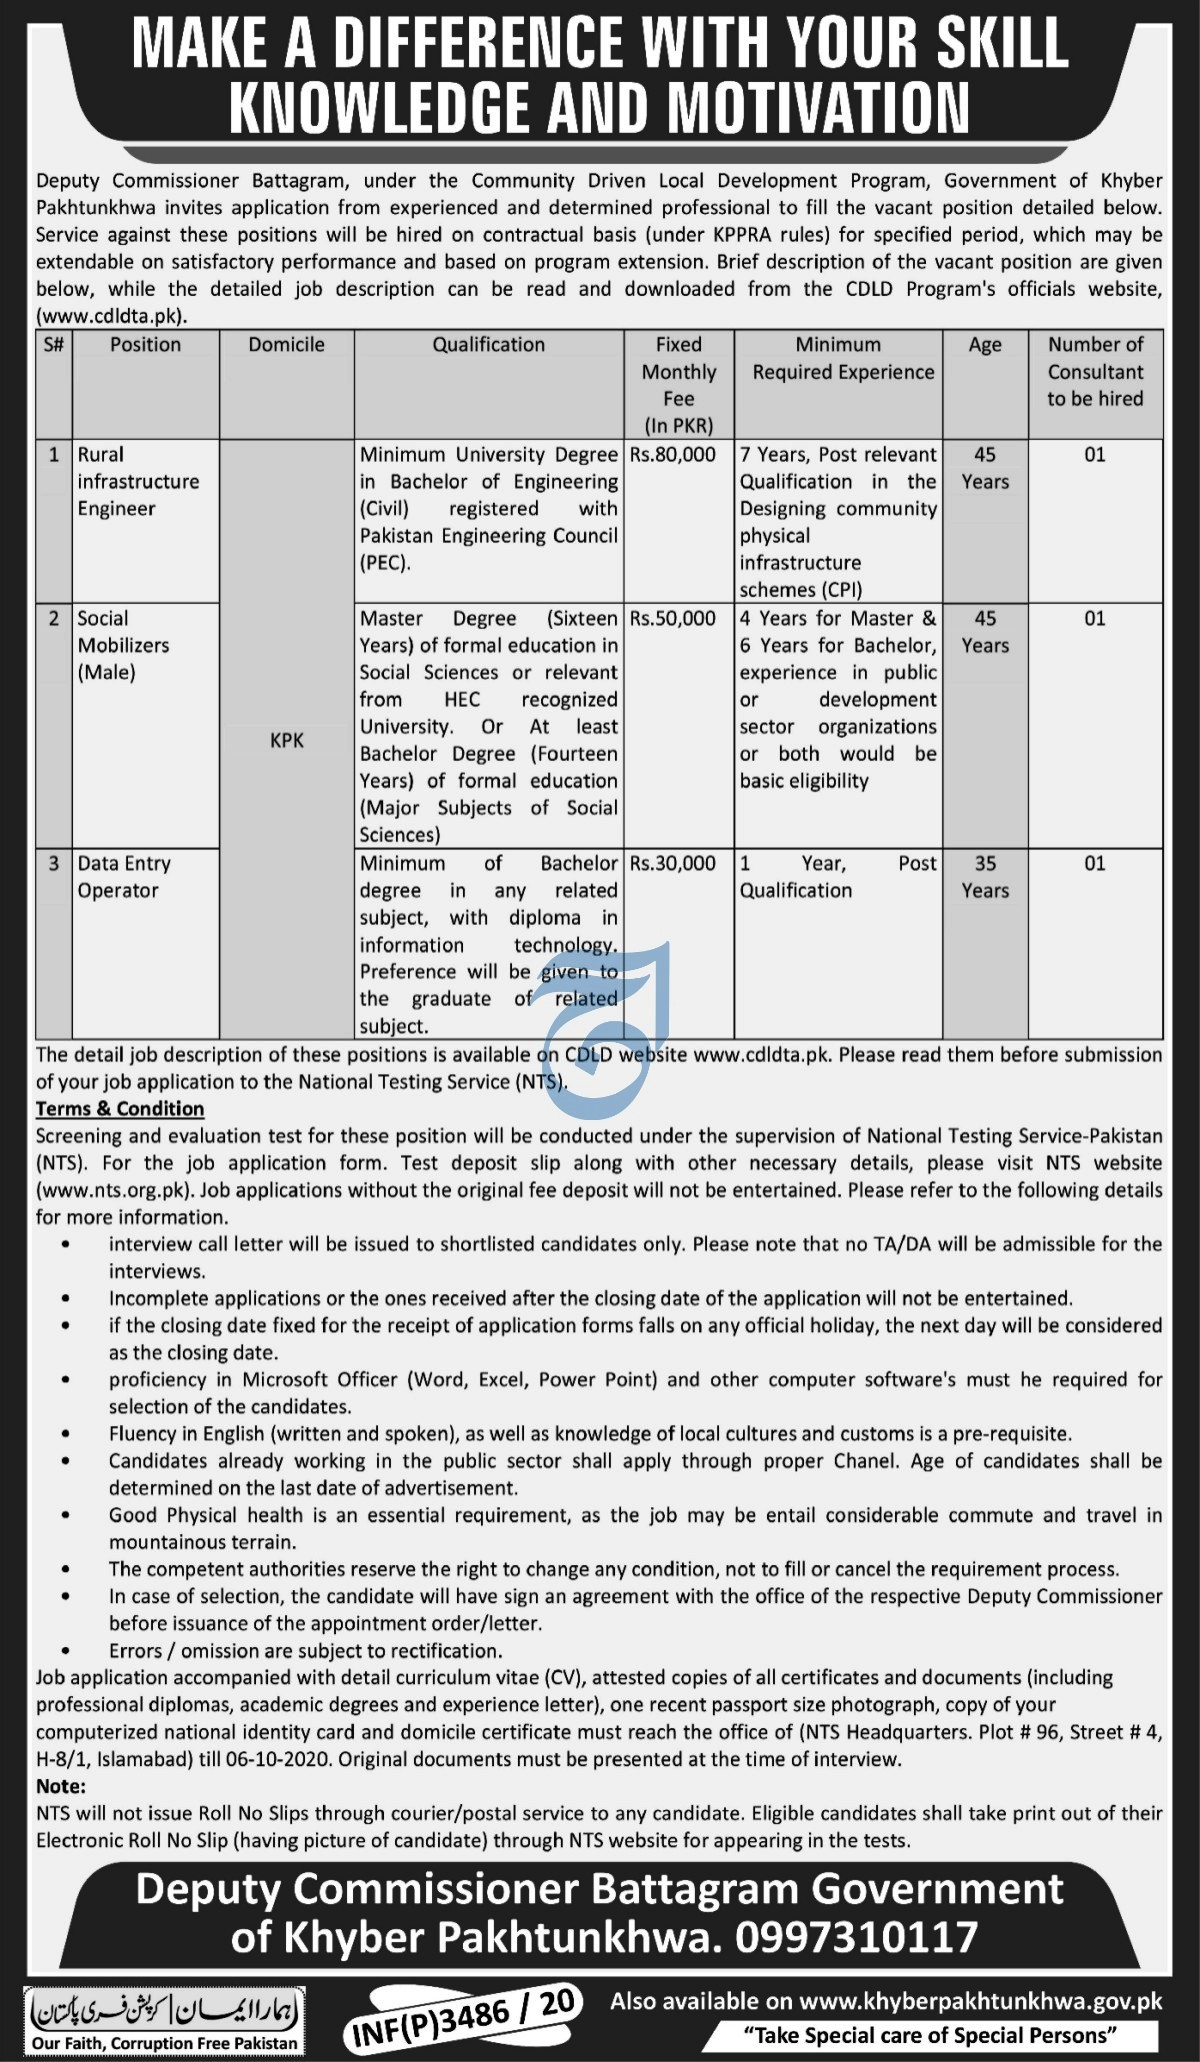 DCO Deputy Commissioner Office Battagram Jobs NTS Roll No Slip